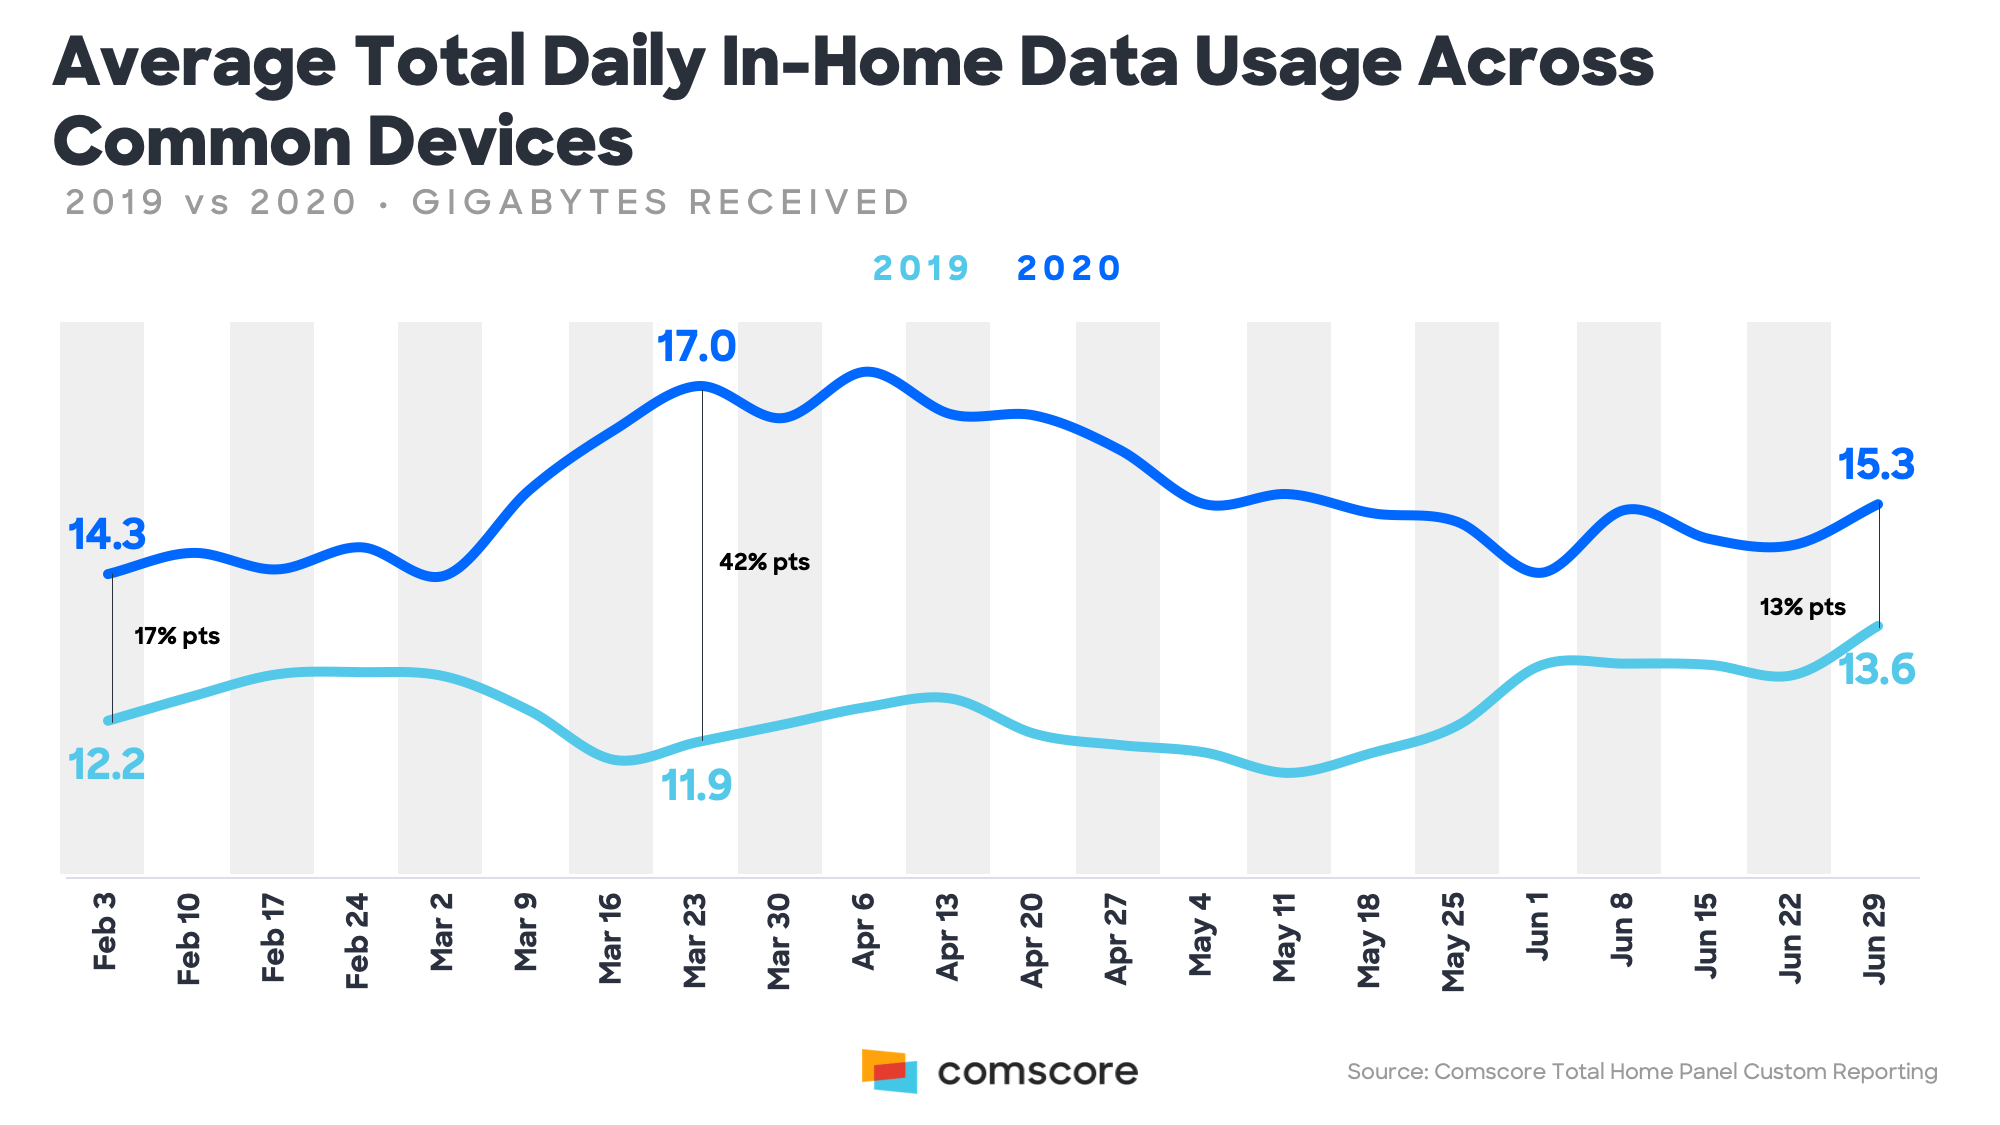 Average Total Daily InHome Data Usage Across Common Devices